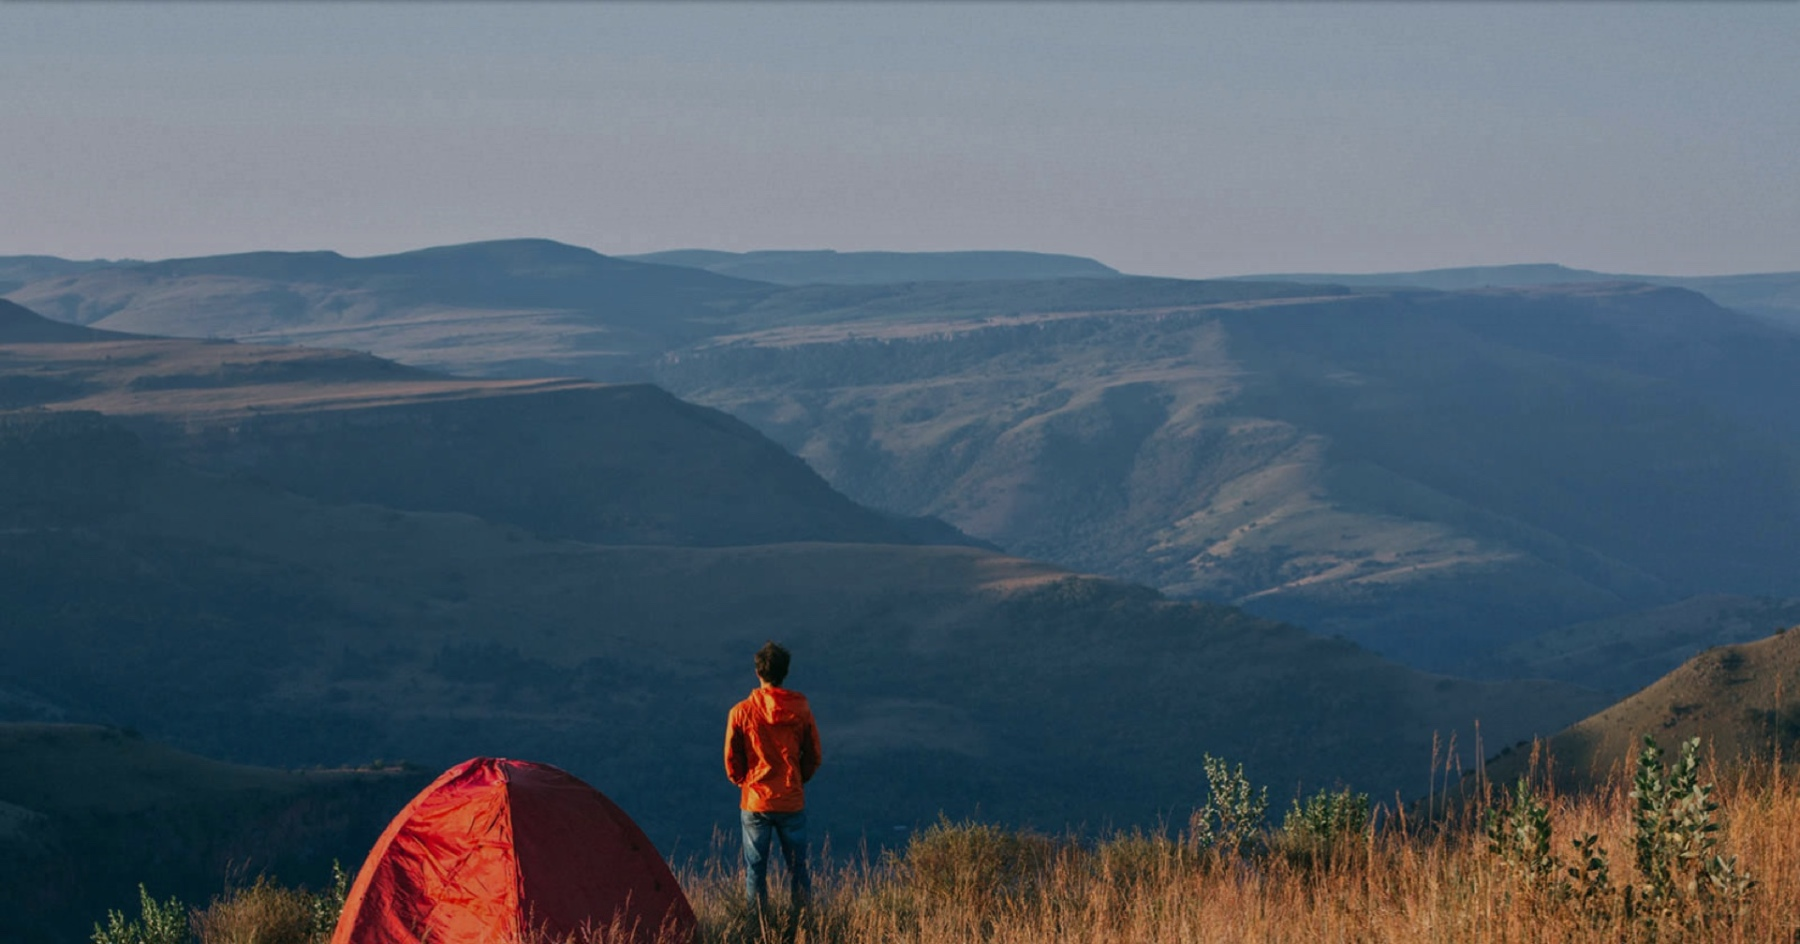 The Easiest Camping Trip You've Ever Taken